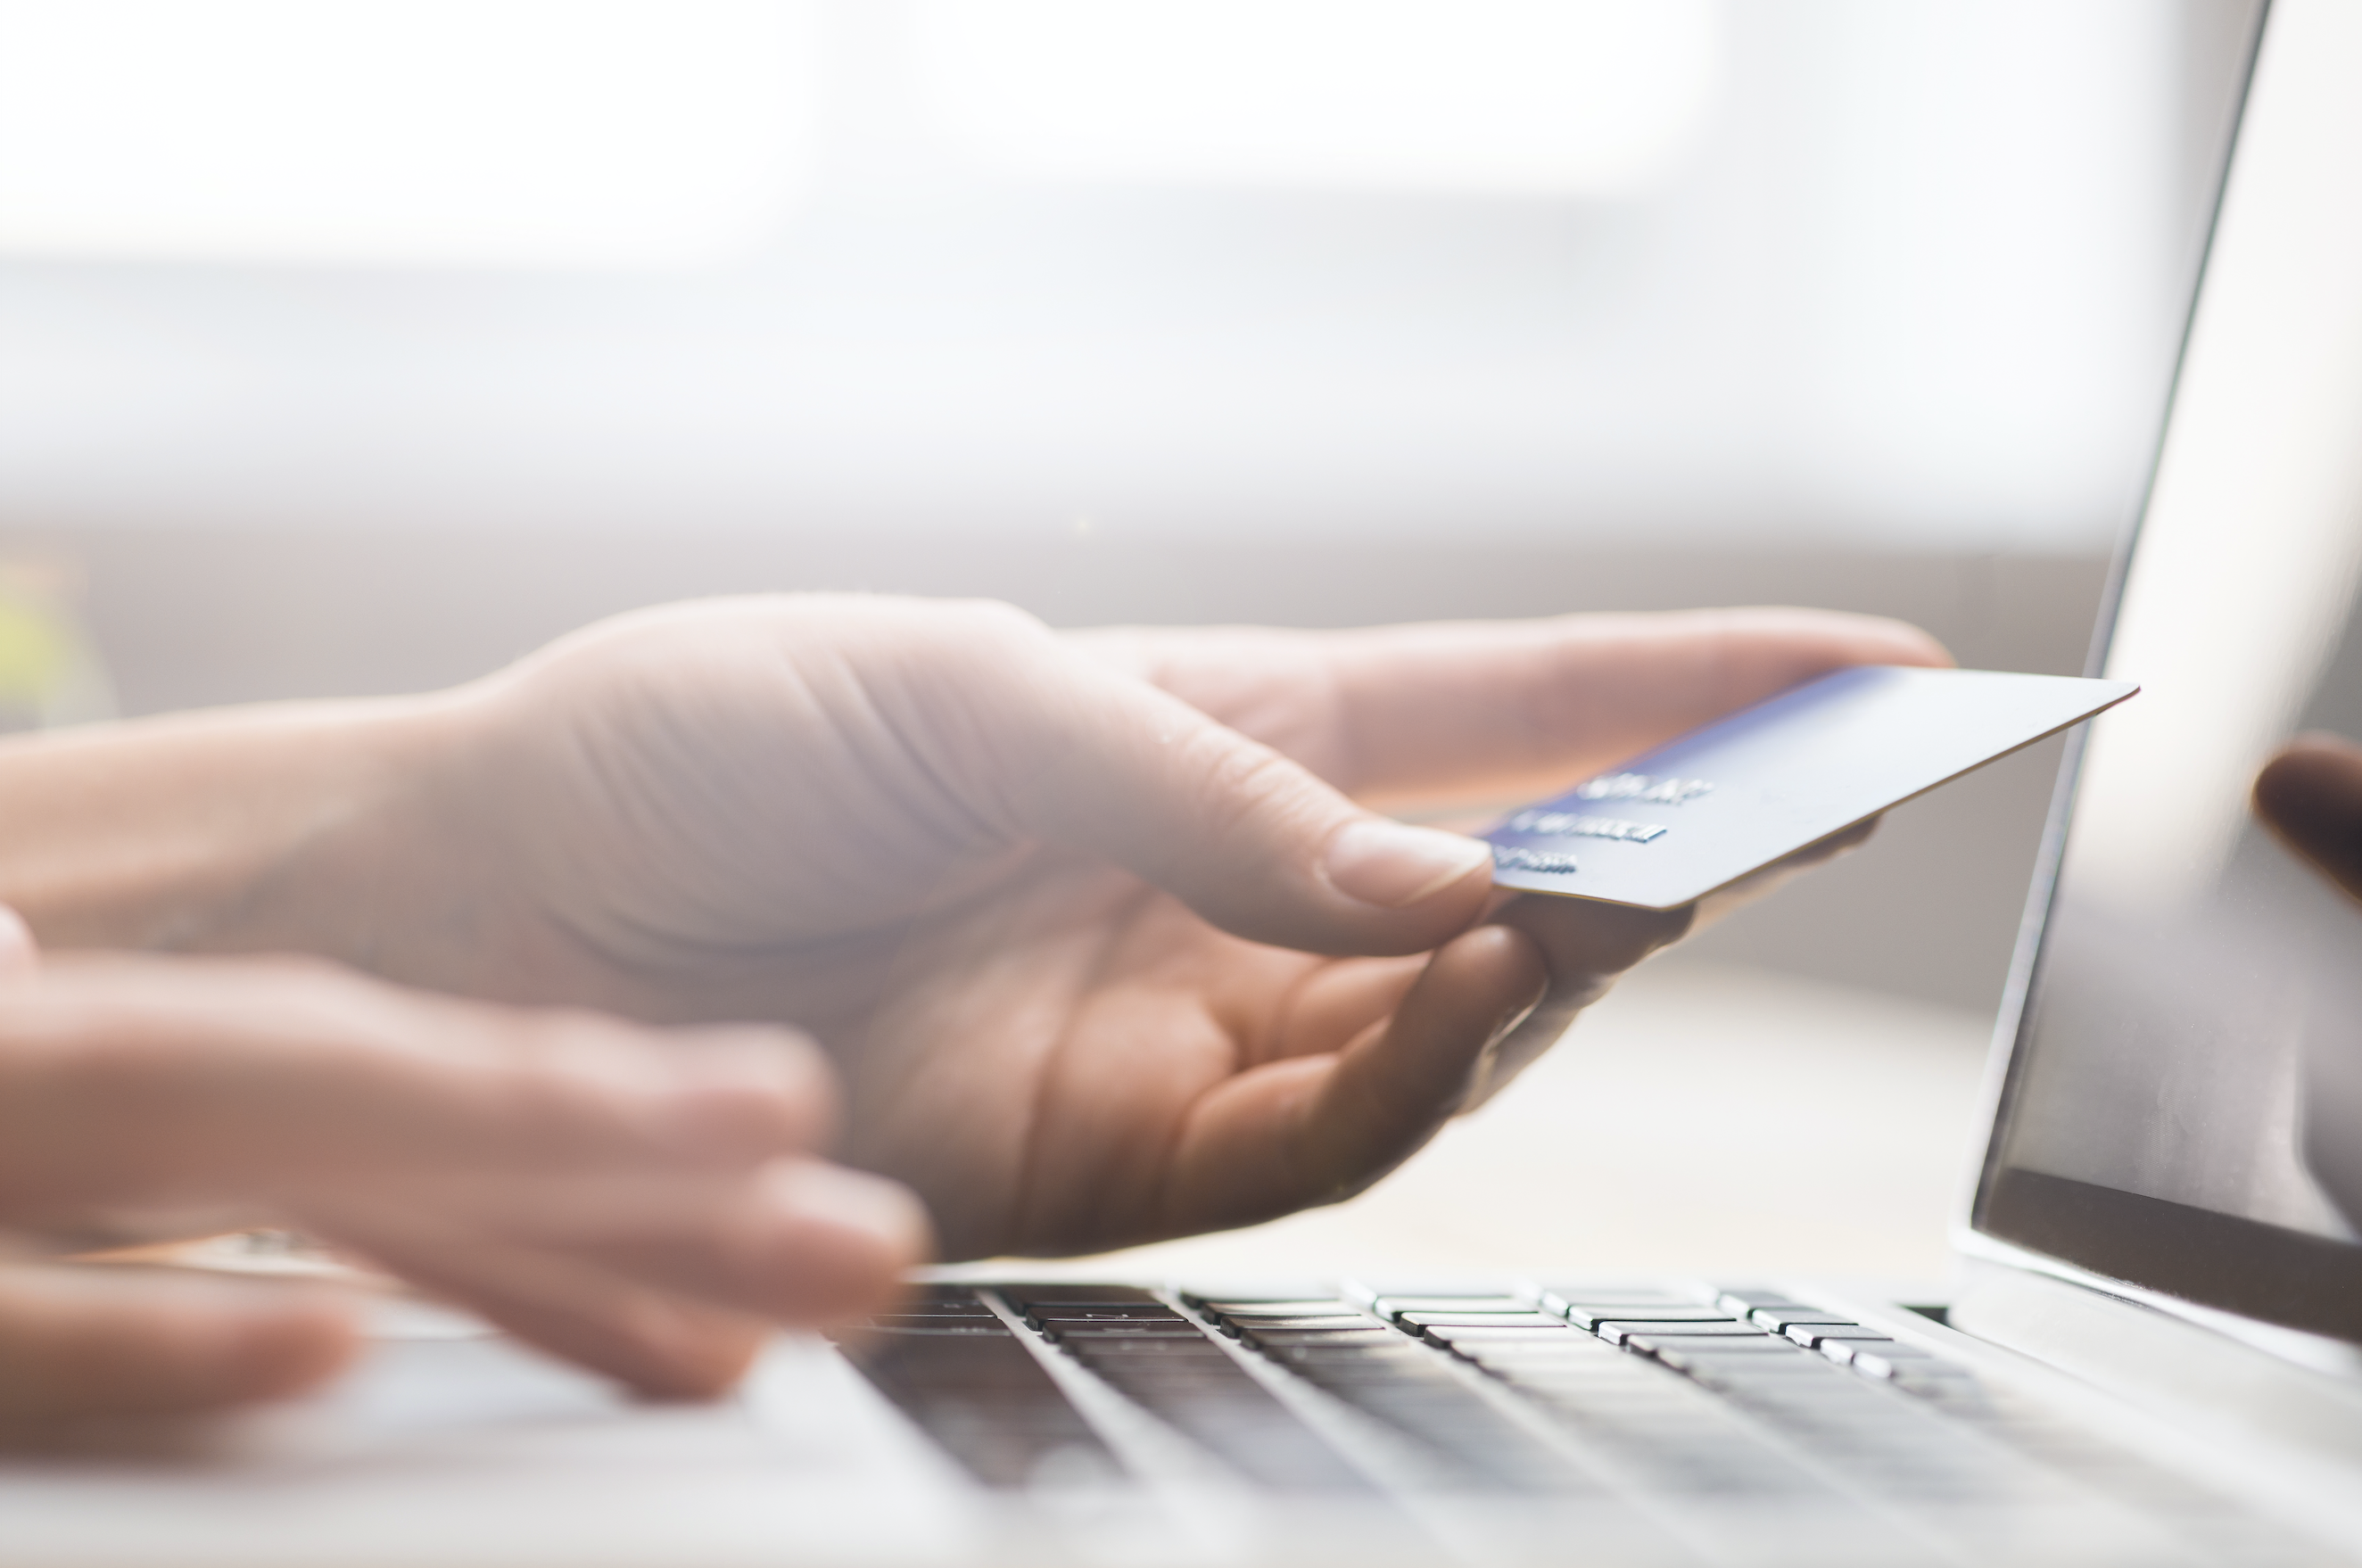 Credit Cards: Pay More Than Minimum For Faster Payoff